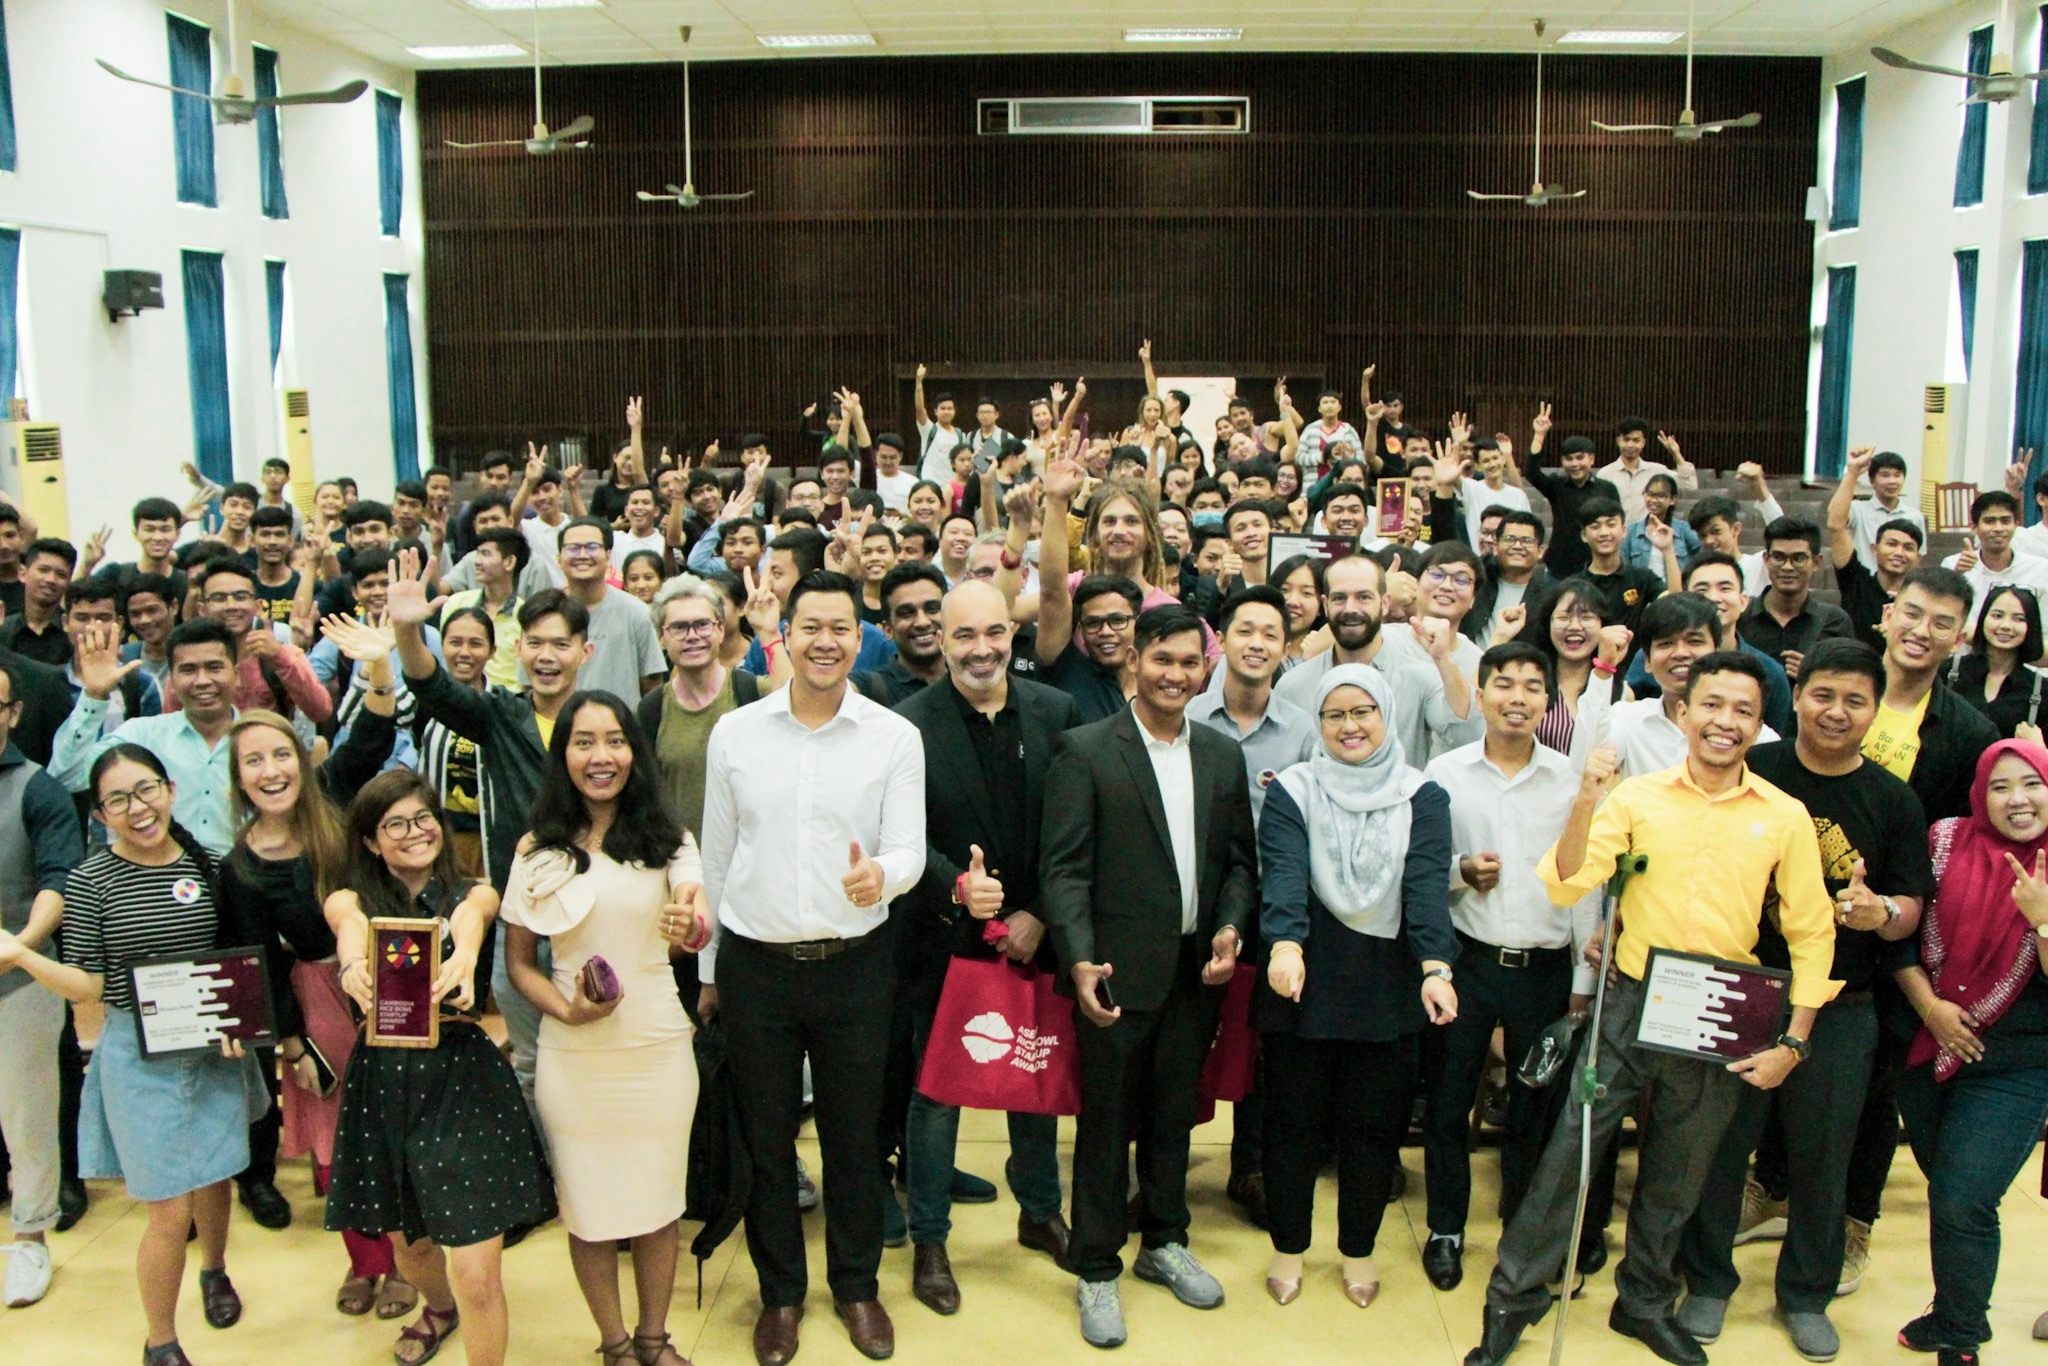 2019 Cambodia Rice Bowl Startup Awards